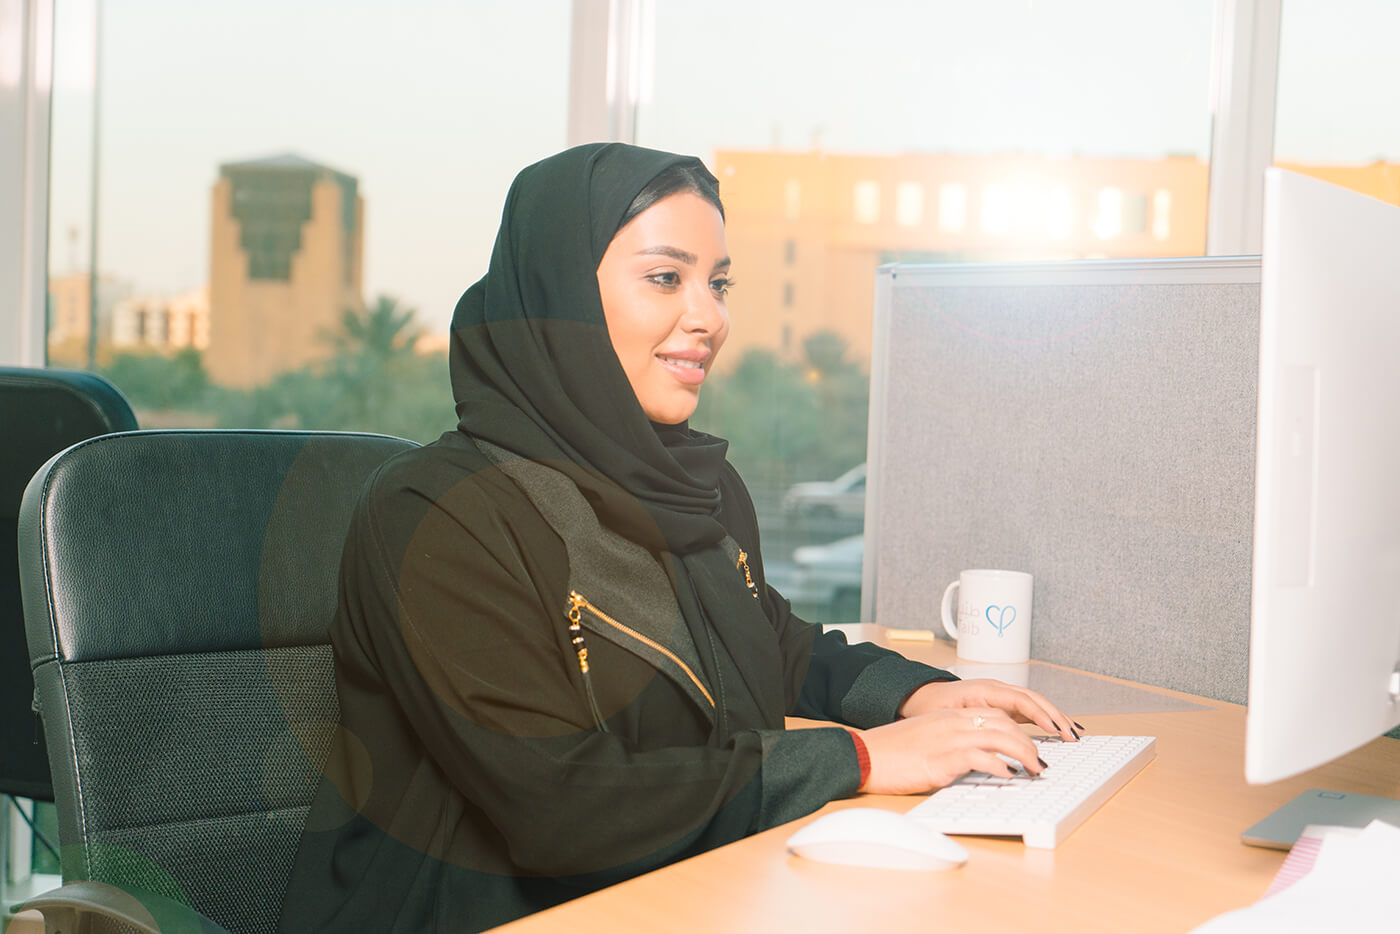 The Role of Women in Saudi's 2030 Vision